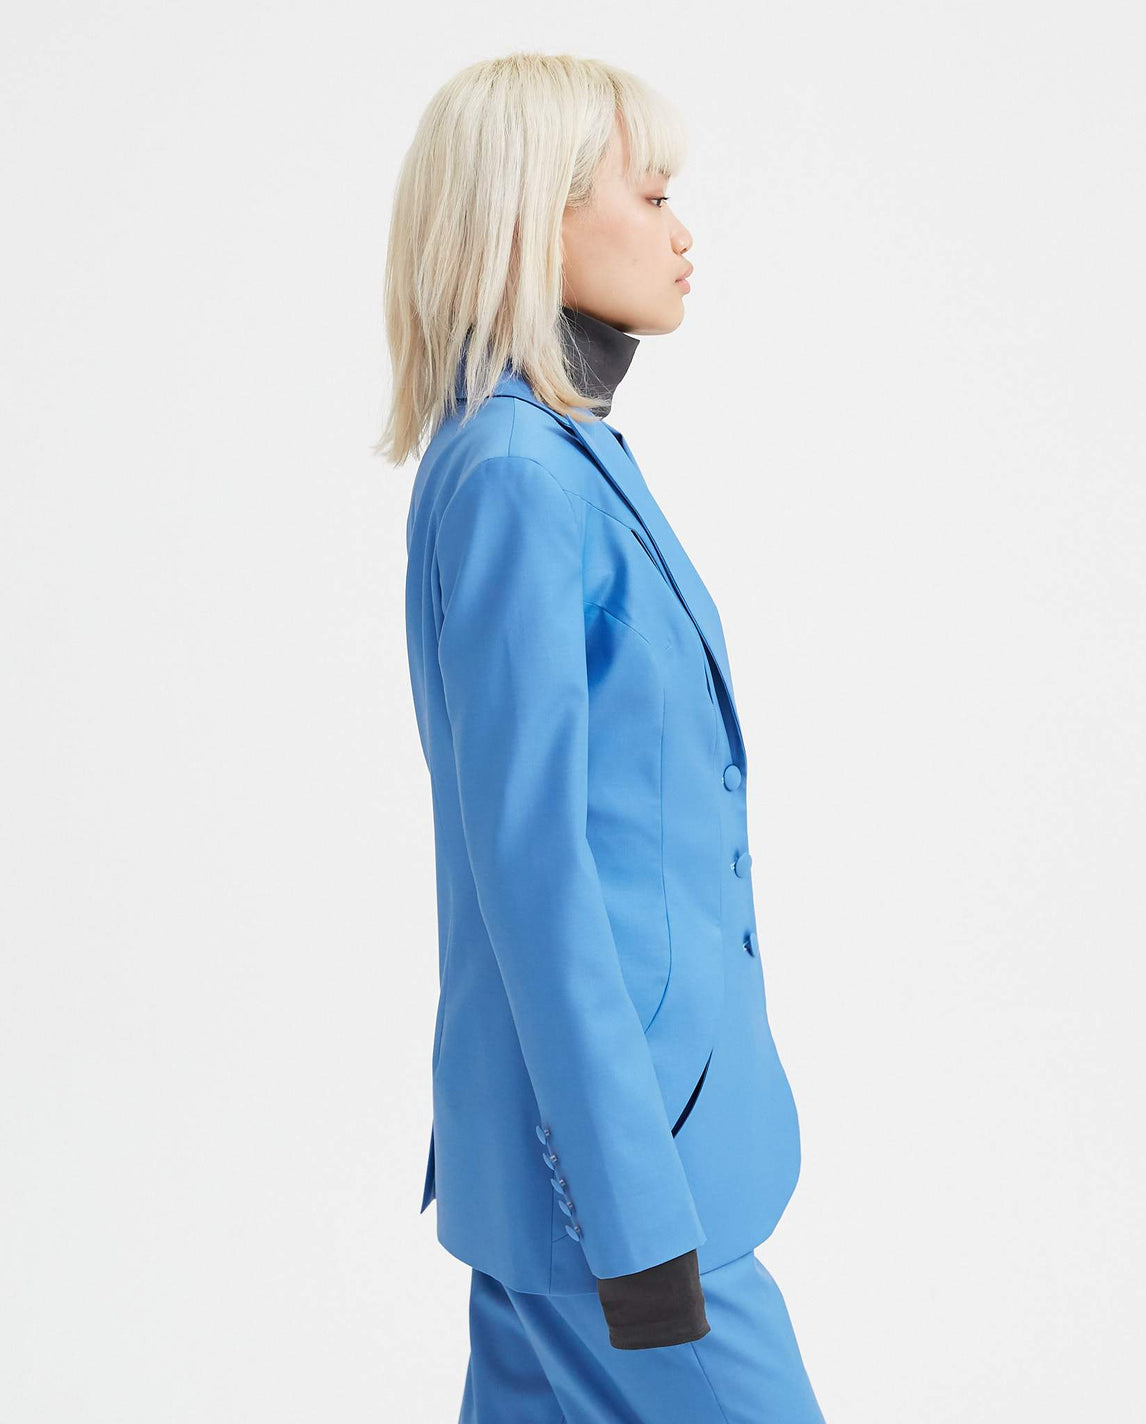 Tropical Wool Panel Blazer - Royal Blue WOMENS MATERIEL